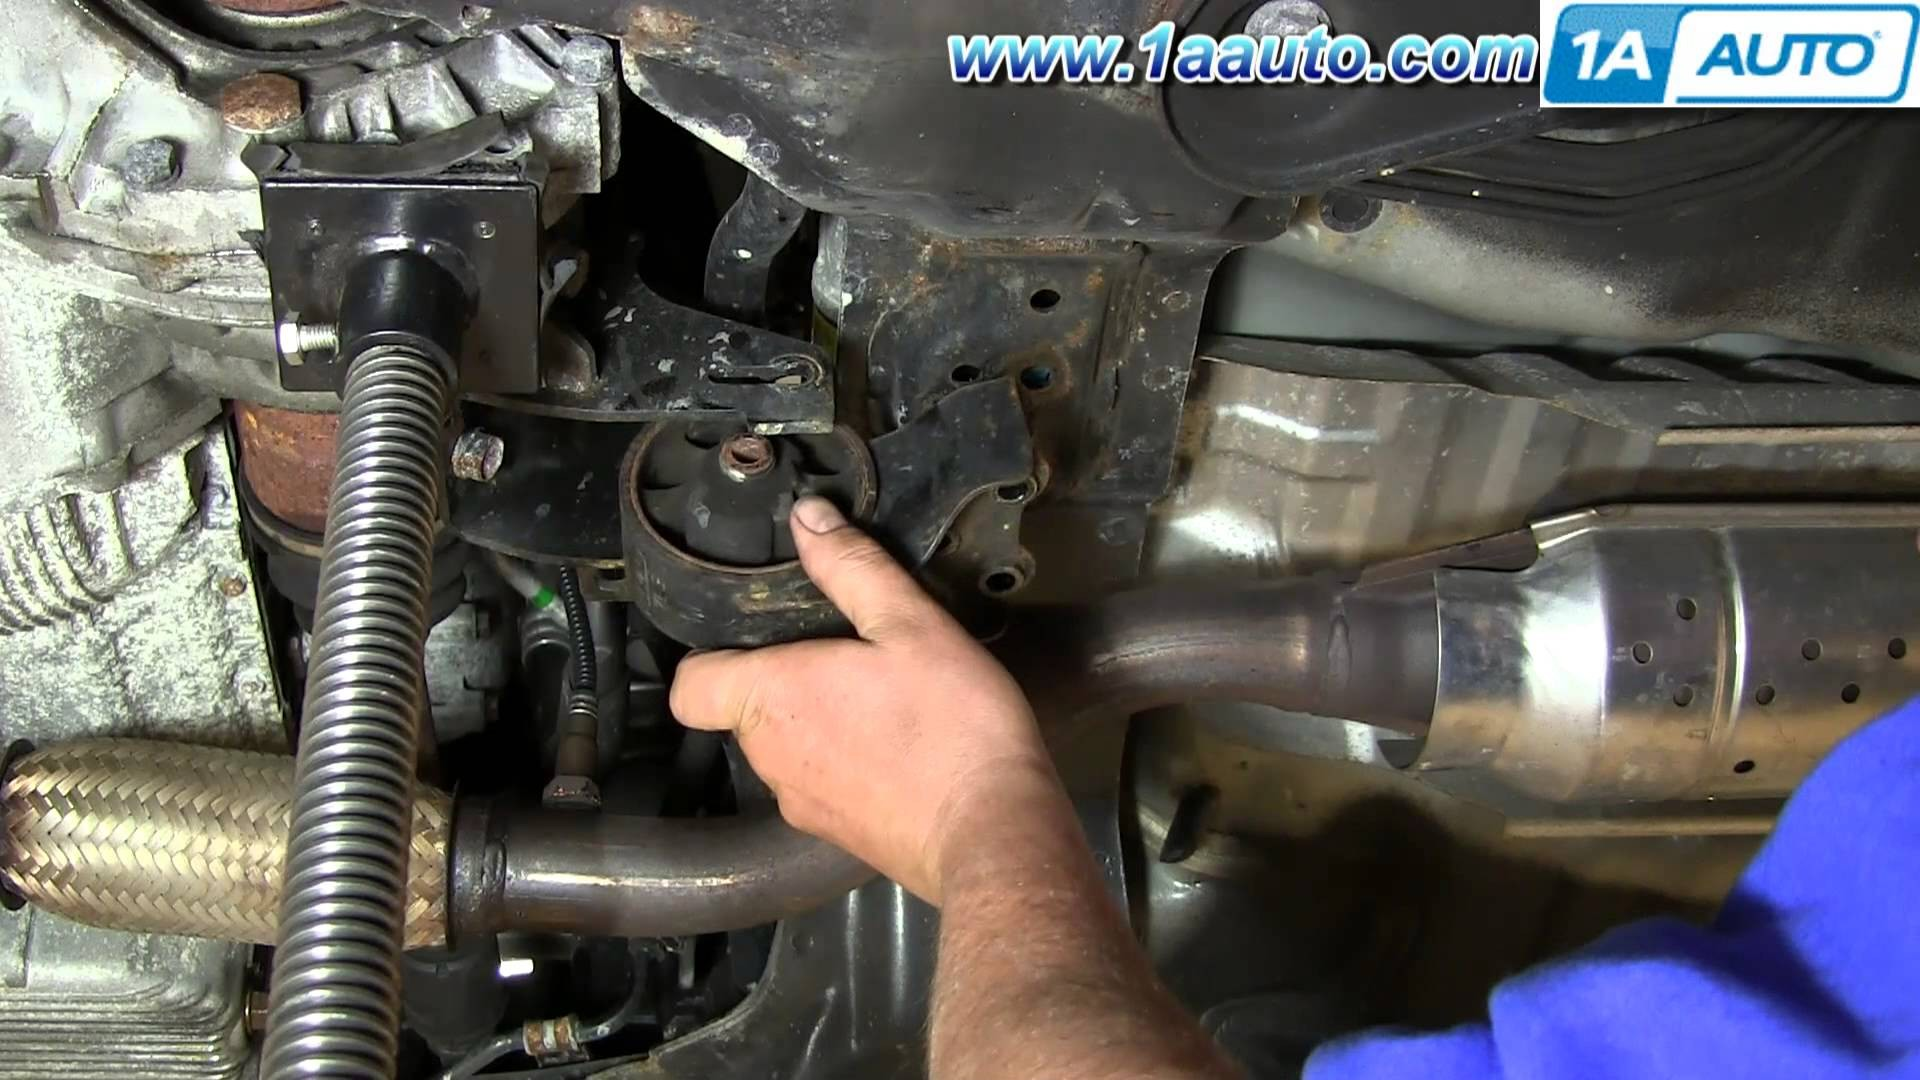 Scion Tc Engine Mount Diagram How to Replace Front Struts On A Car 1080p Hd  Of. Related Post